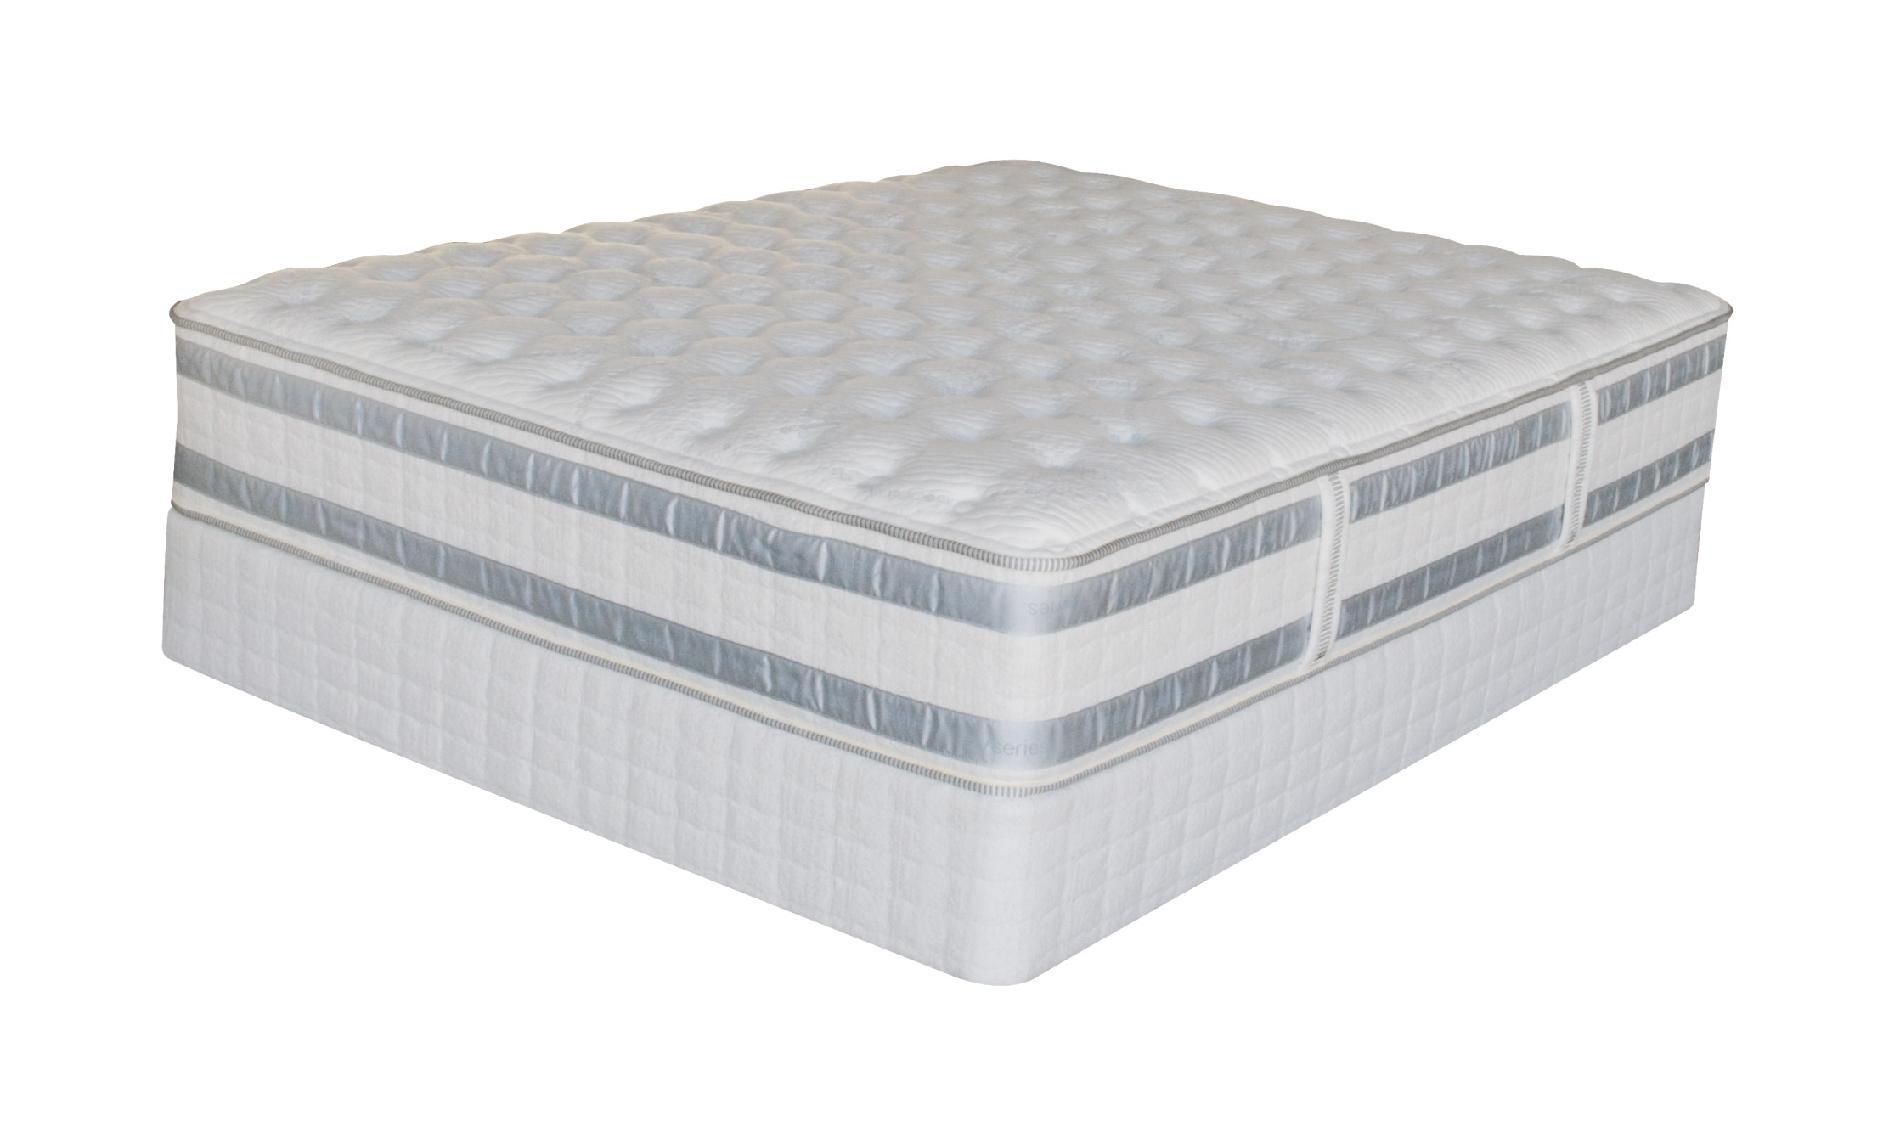 Serta  Applause Firm California King Mattress